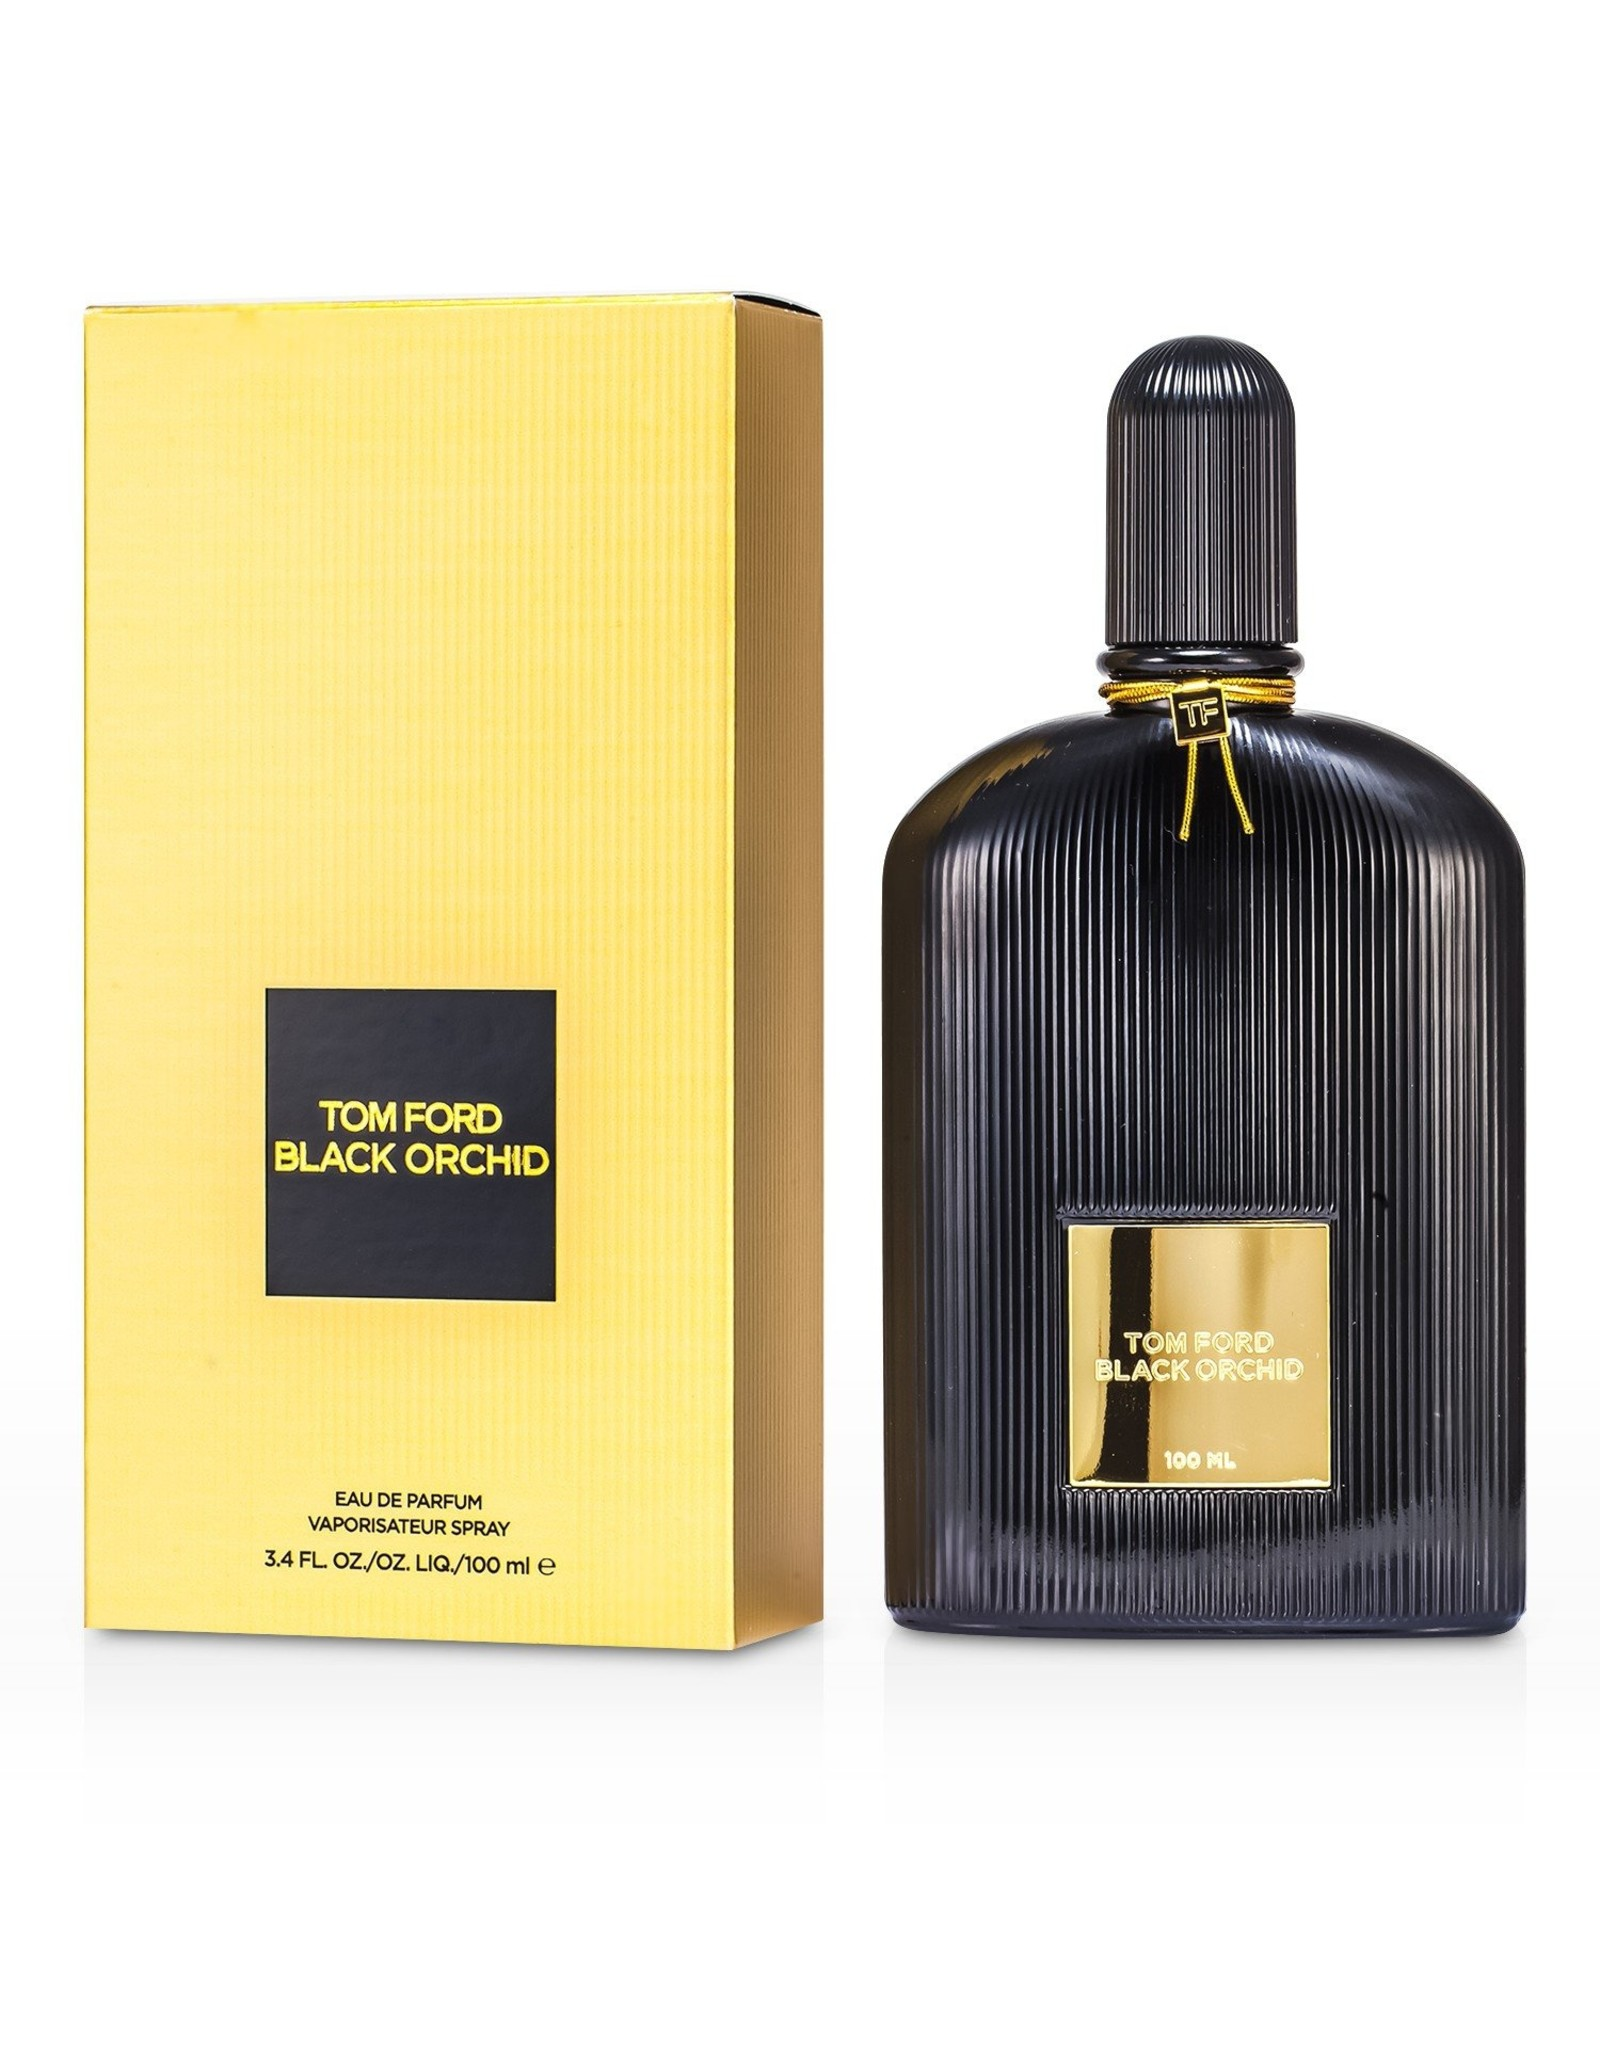 TOM FORD TOM FORD BLACK ORCHID